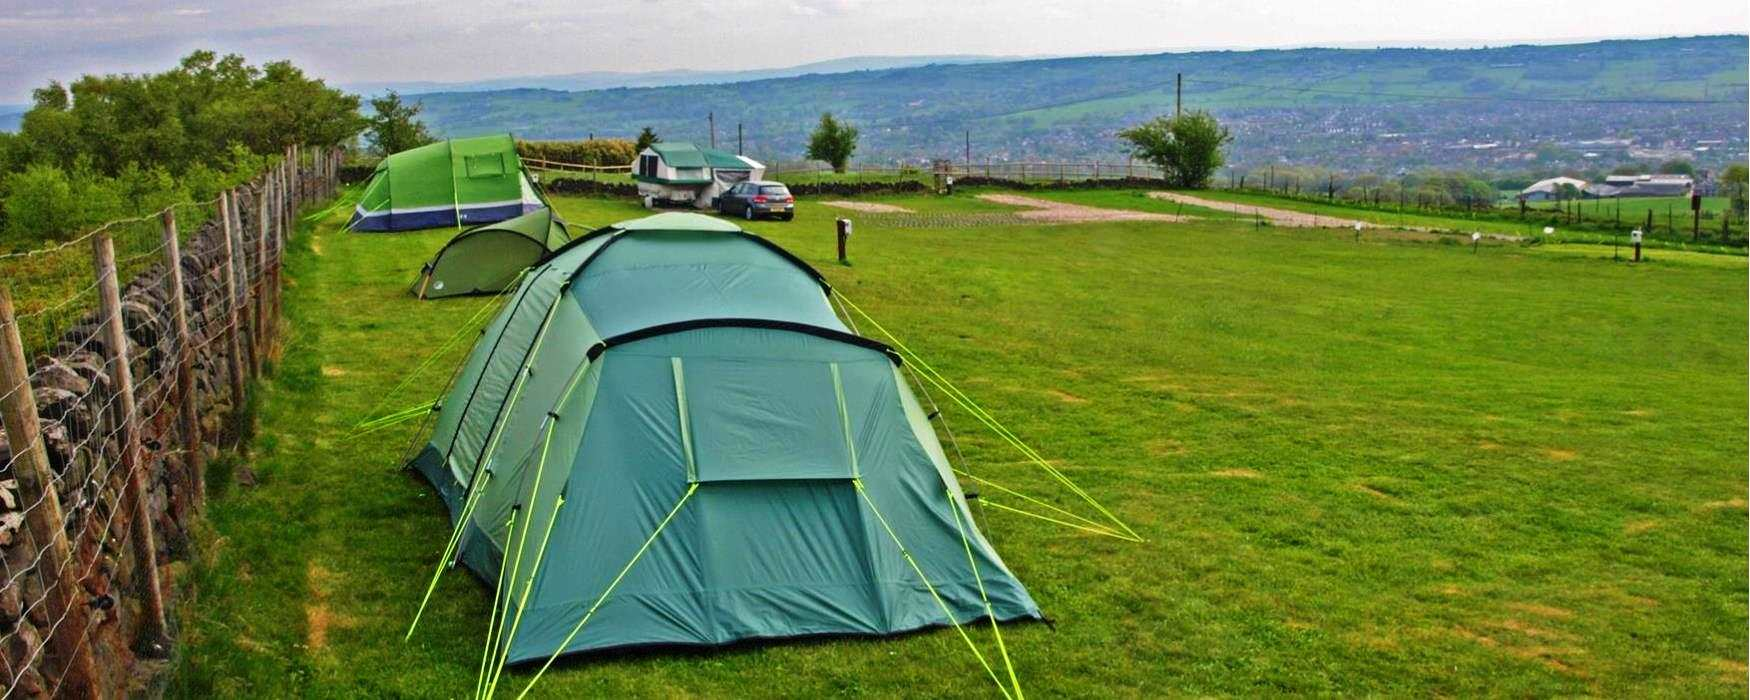 Boating, Caravan & Camping in Stoke-on-Trent